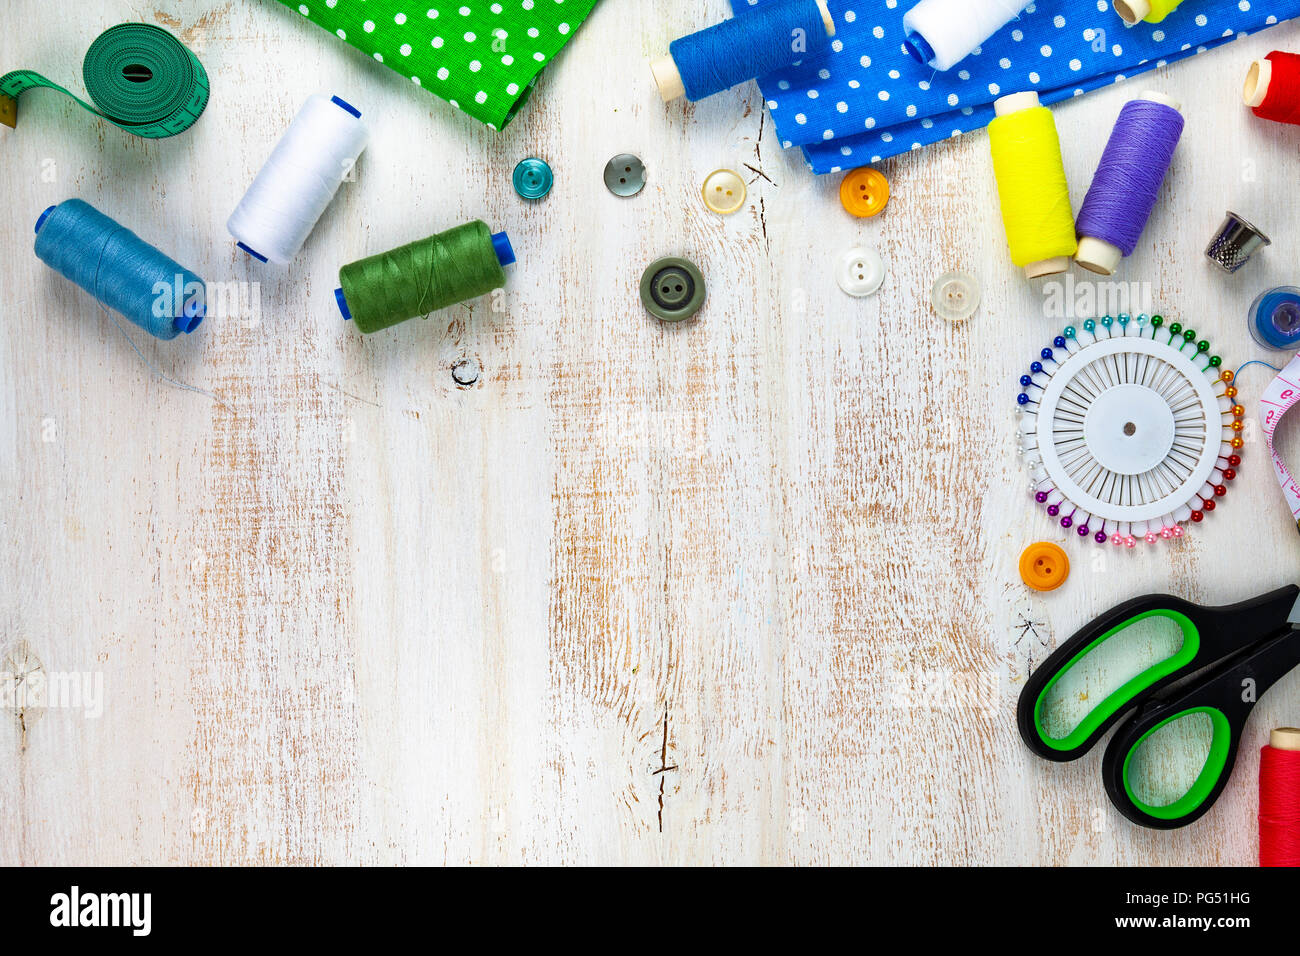 ed0cb7ac4d Sewing accessories and fabrics on a wooden background. Fabrics, measuring  tape, pins, buttons and thread.